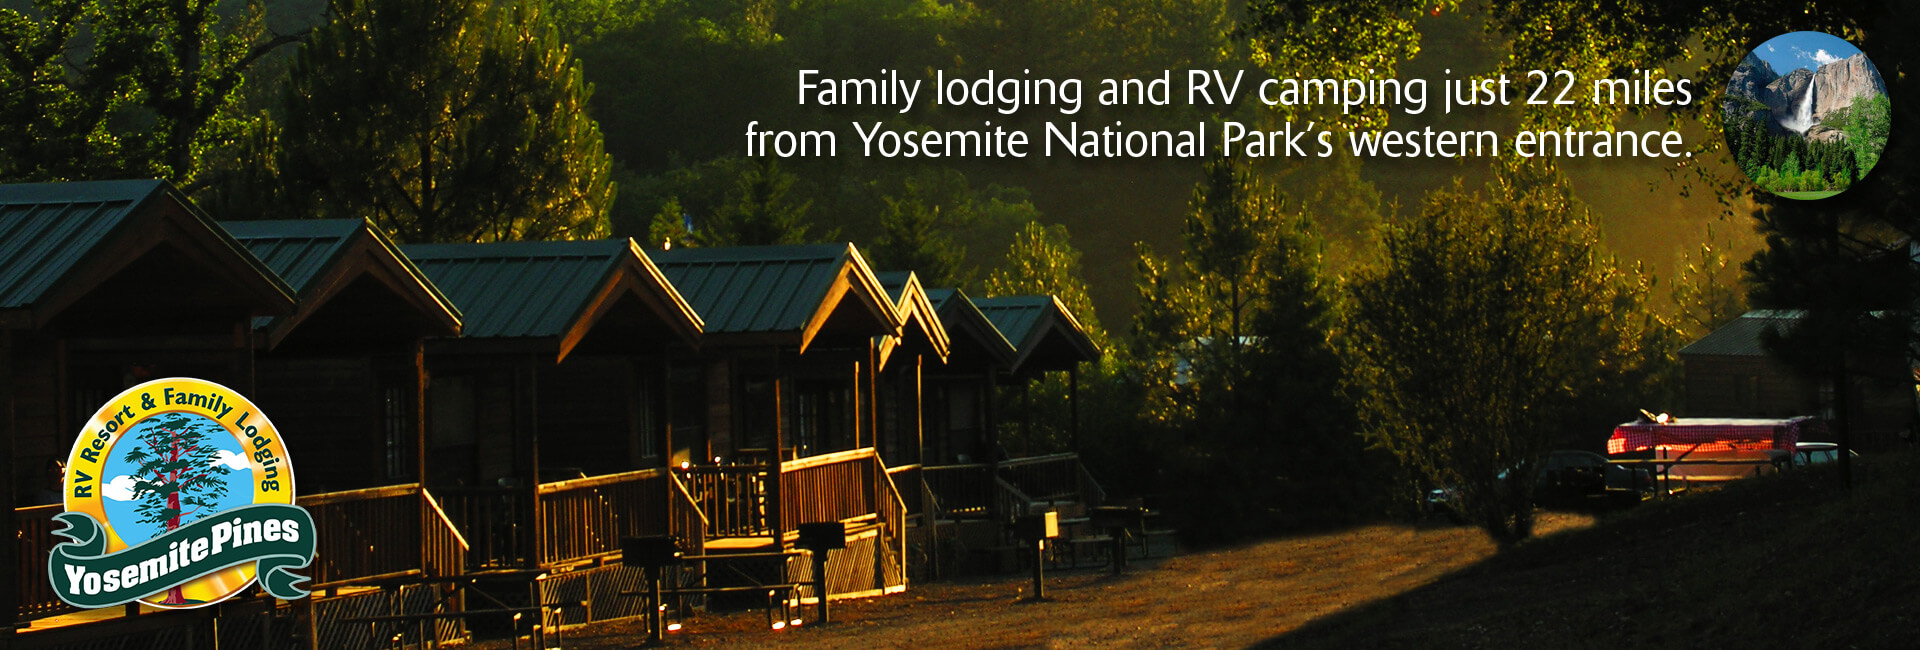 Yosemite Pines RV & Camping